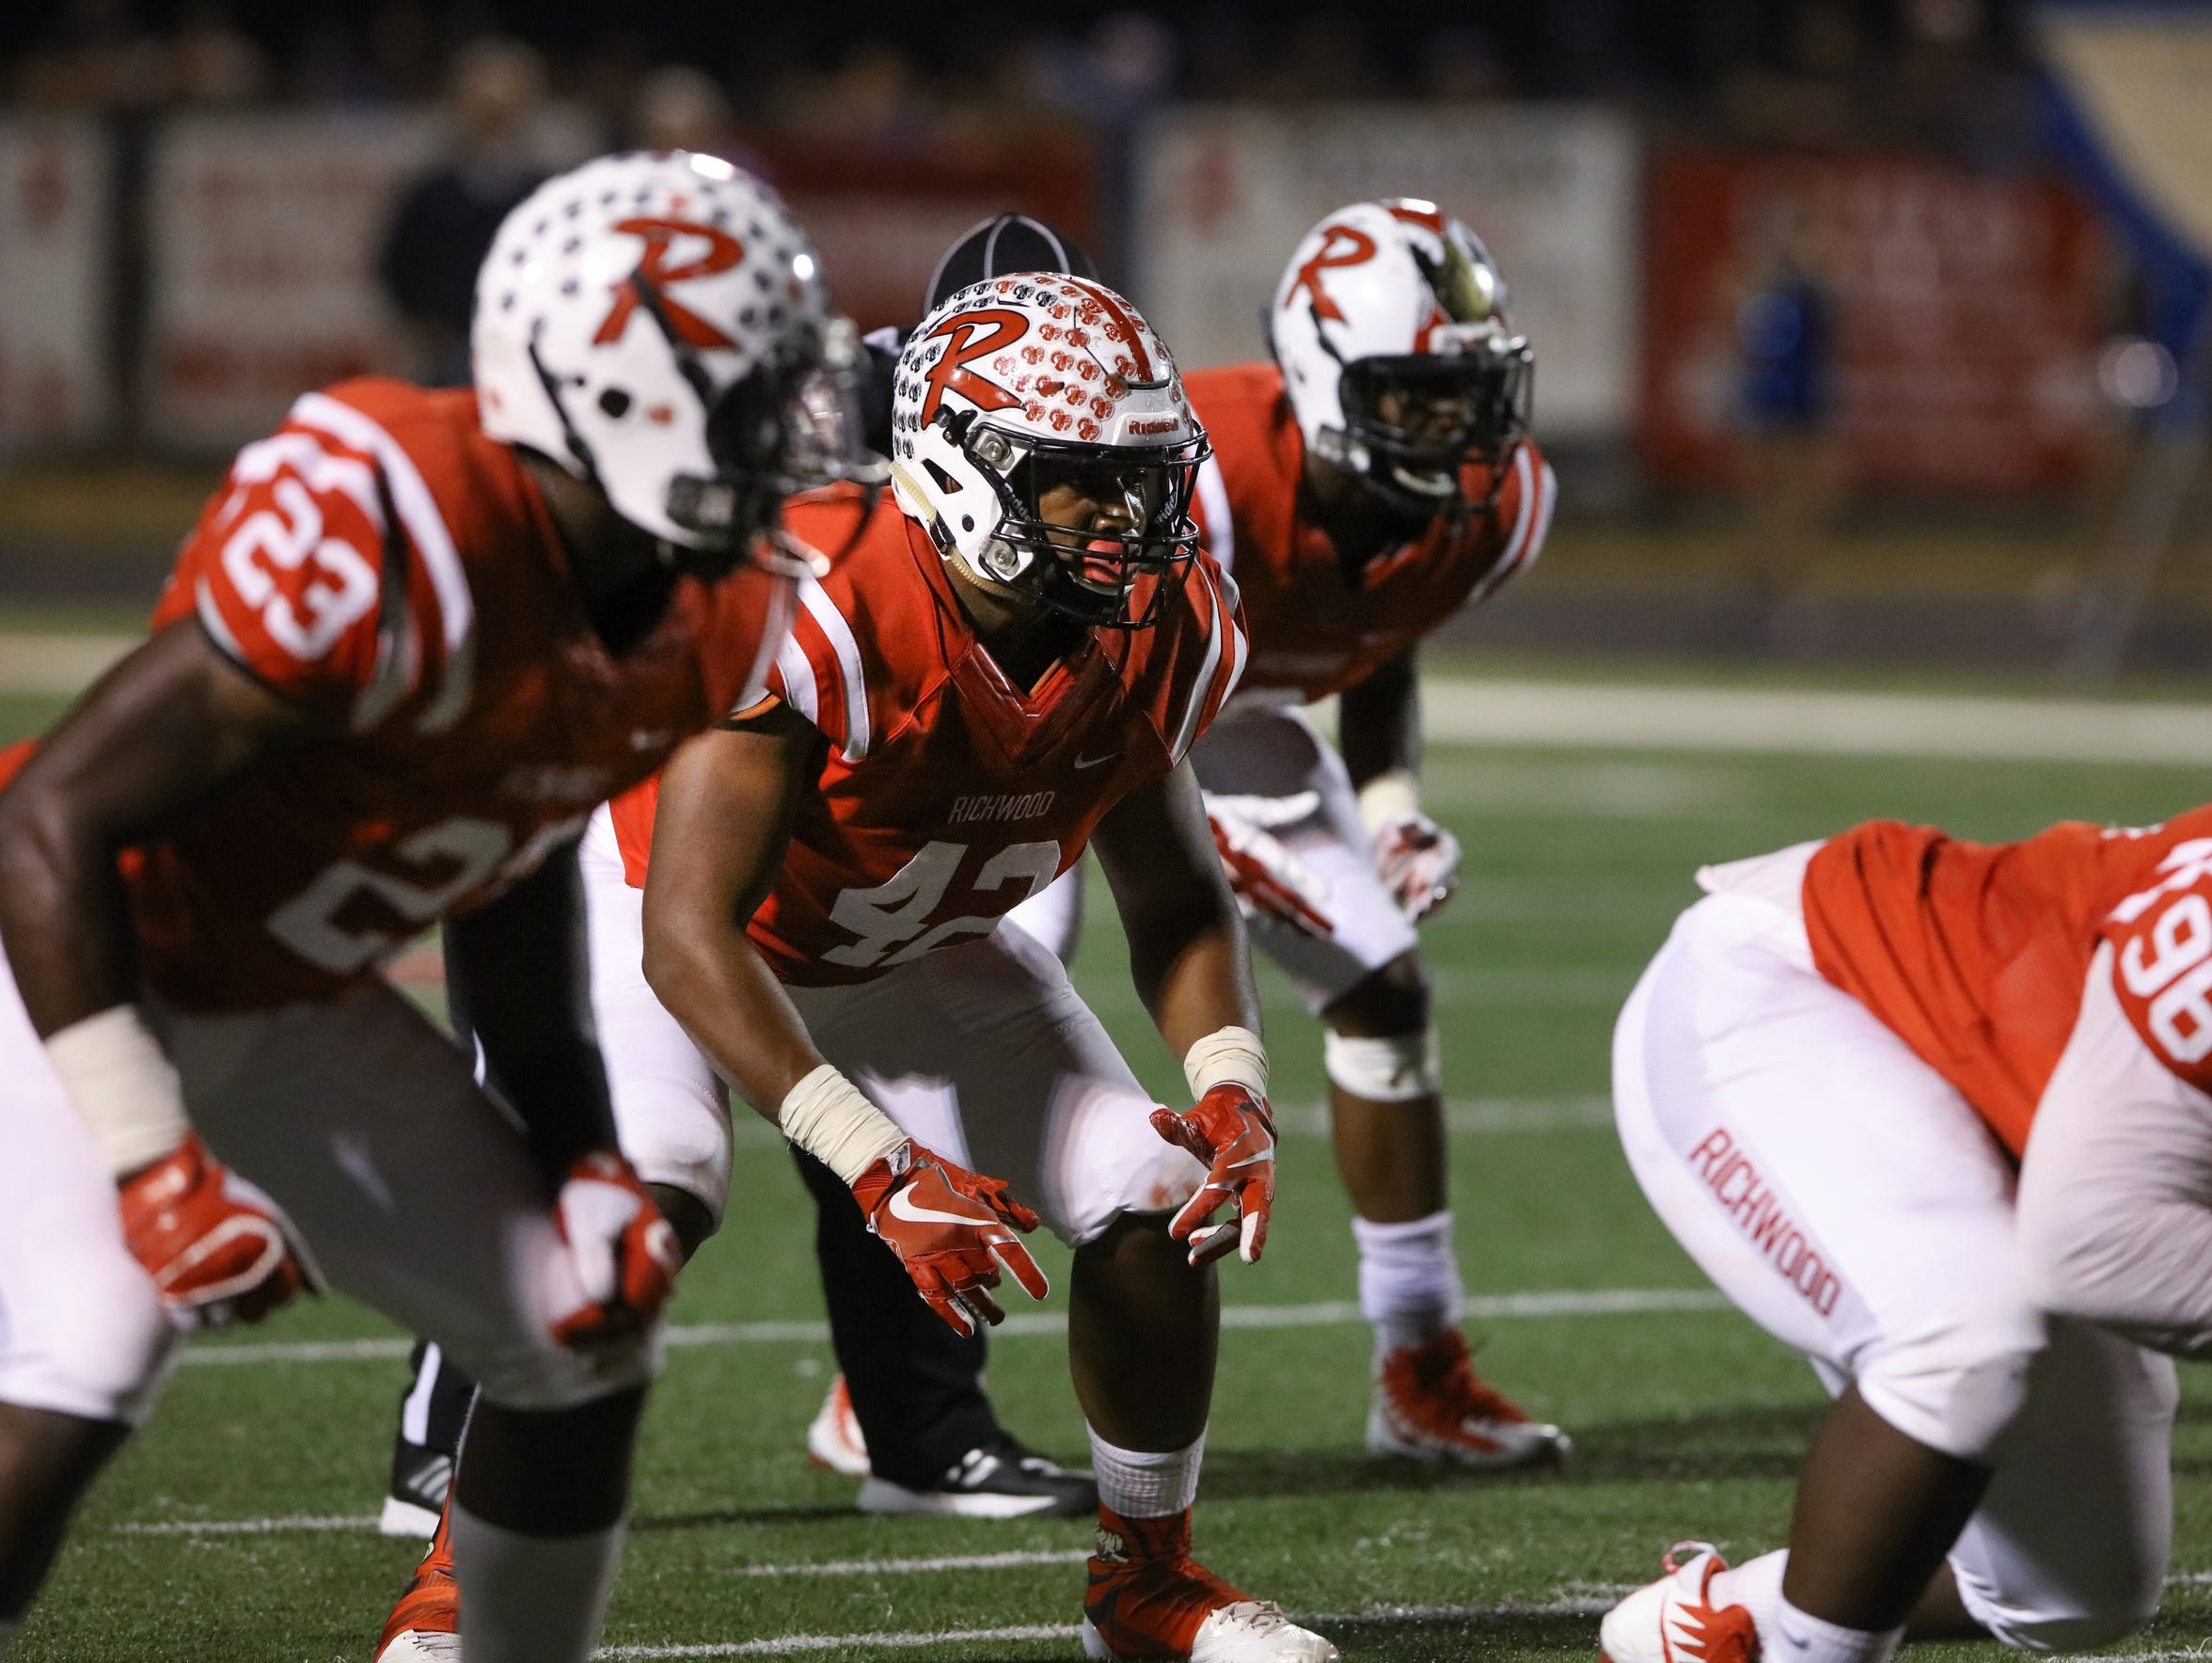 Richwood shook off a slow start on defense and is allowing just 16 points per game. The Rams have two shutouts on their resume and have allowed eight points-or-less six times.